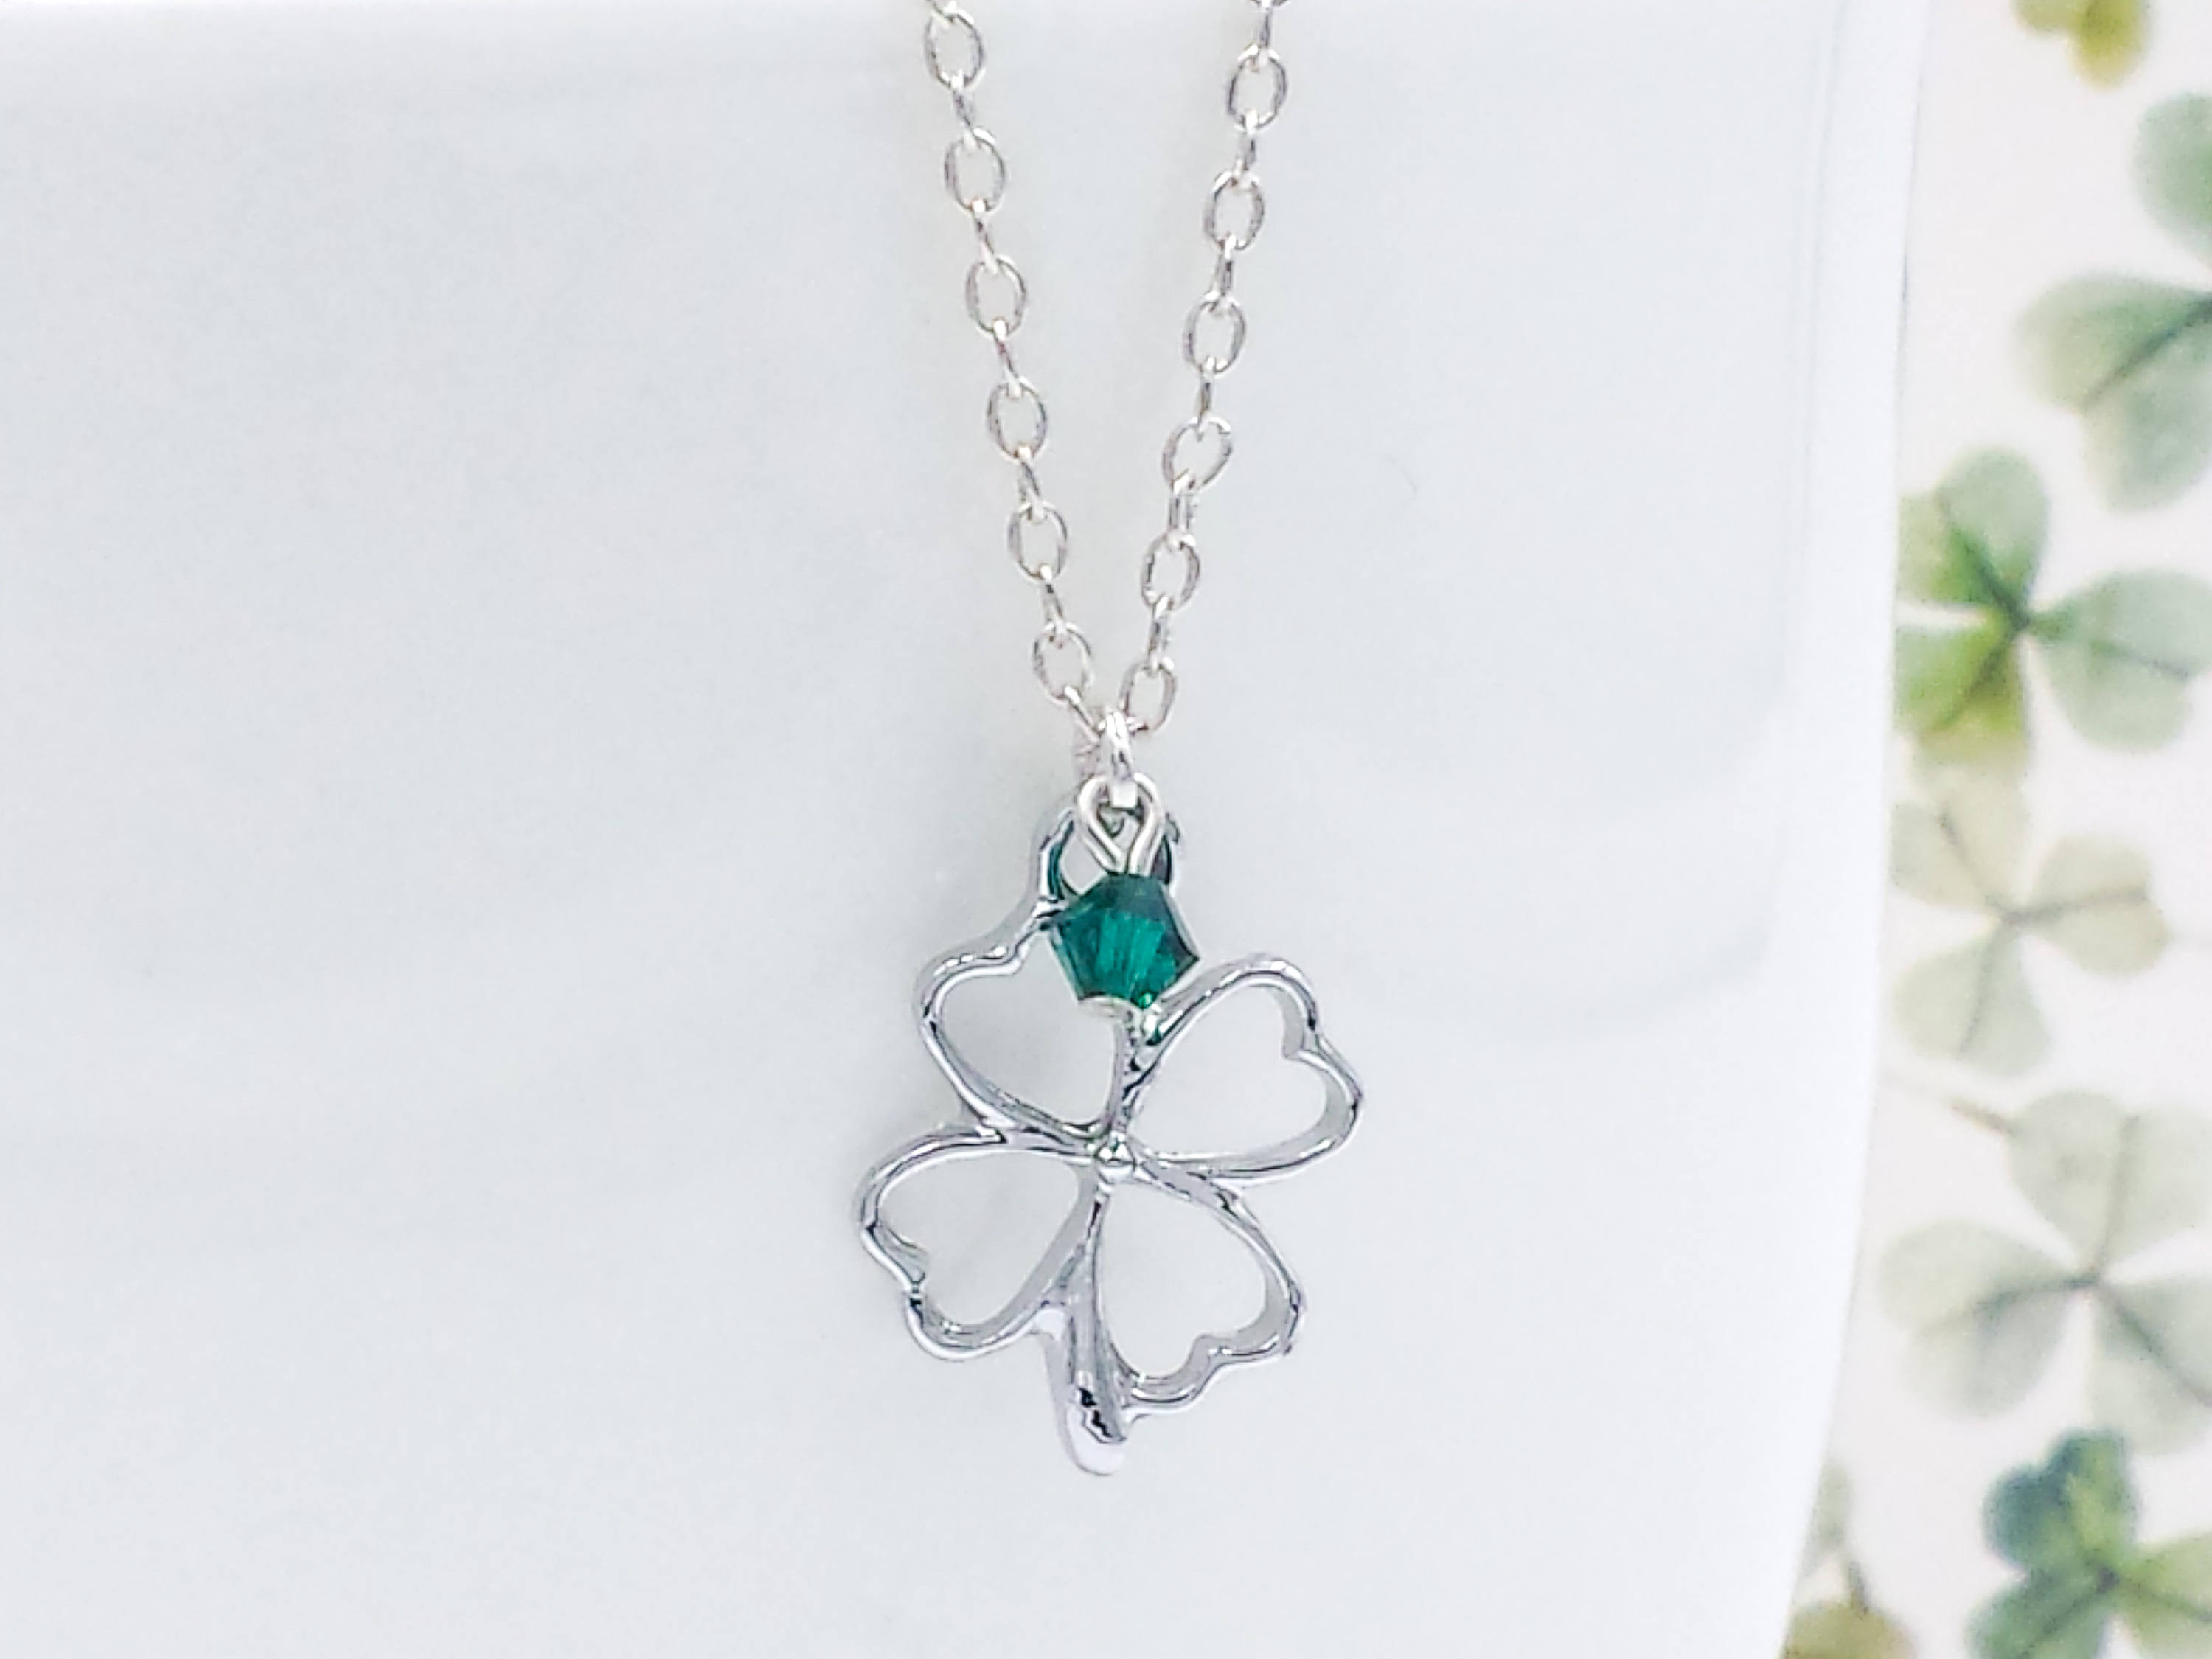 Clover Necklace, Silver Four Leaf Lucky Clover Necklace, Birthstone  Shamrock Pendant Charm, Friendship, Sister, Wedding, Gift For Her For Newest Lucky Four Leaf Clover Dangle Charm Necklaces (View 7 of 25)